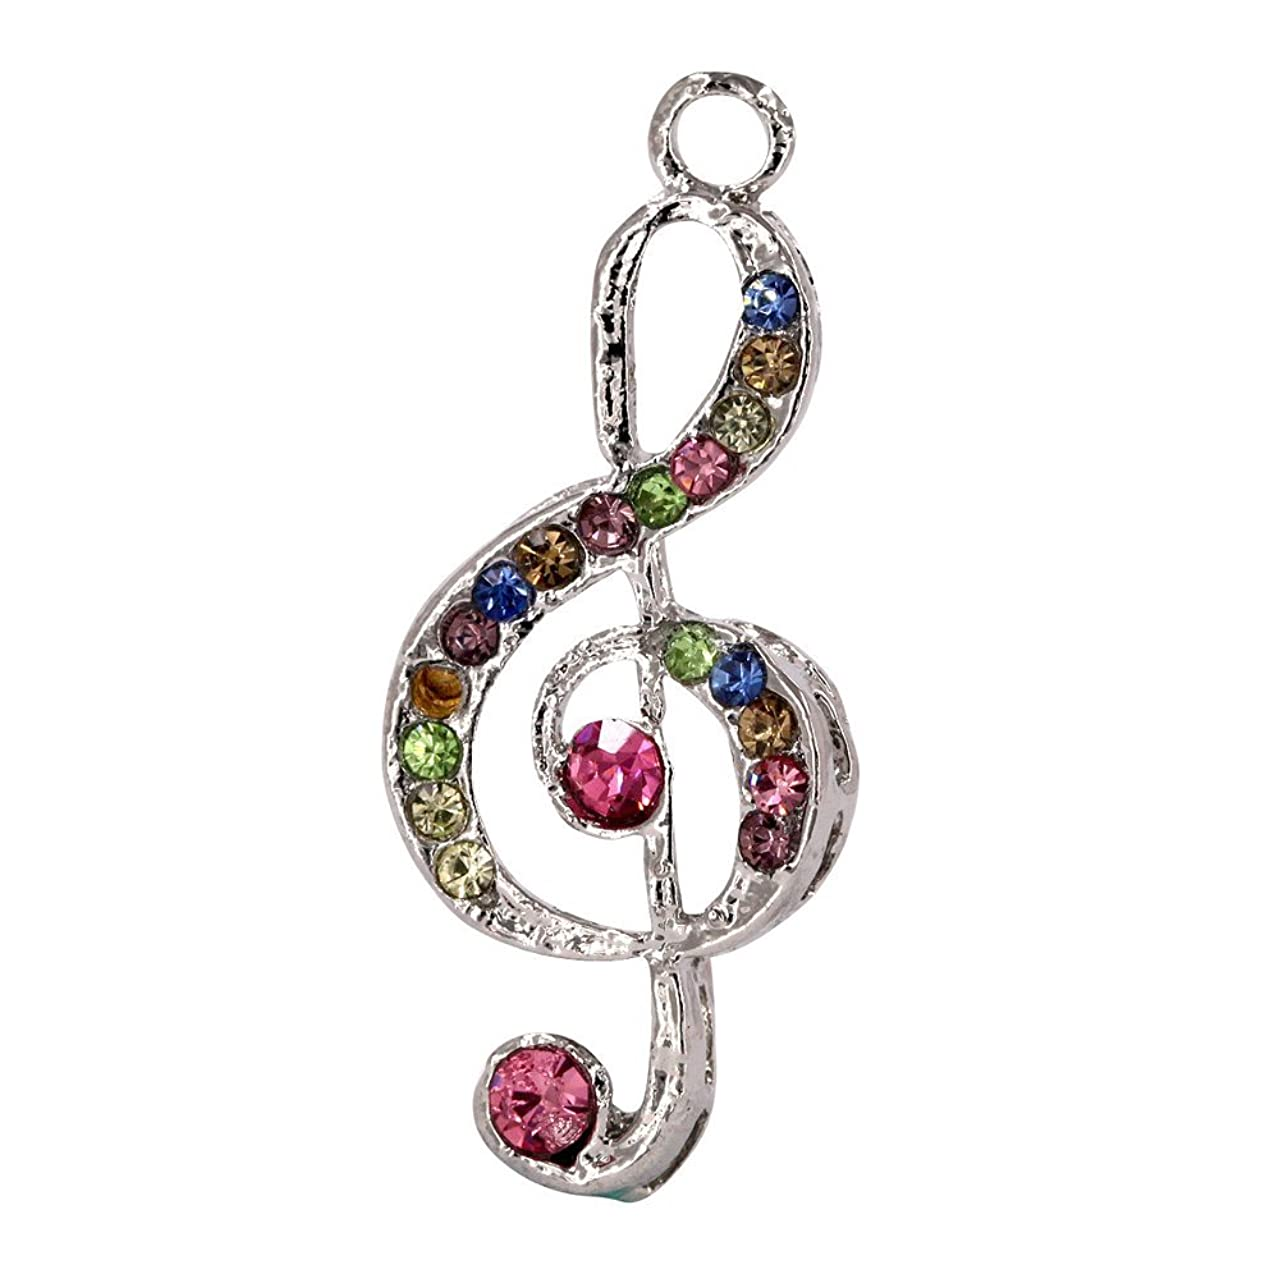 Creative DIY Crystal Music Note Charms Pendants Wholesale (Set of 3) MH287